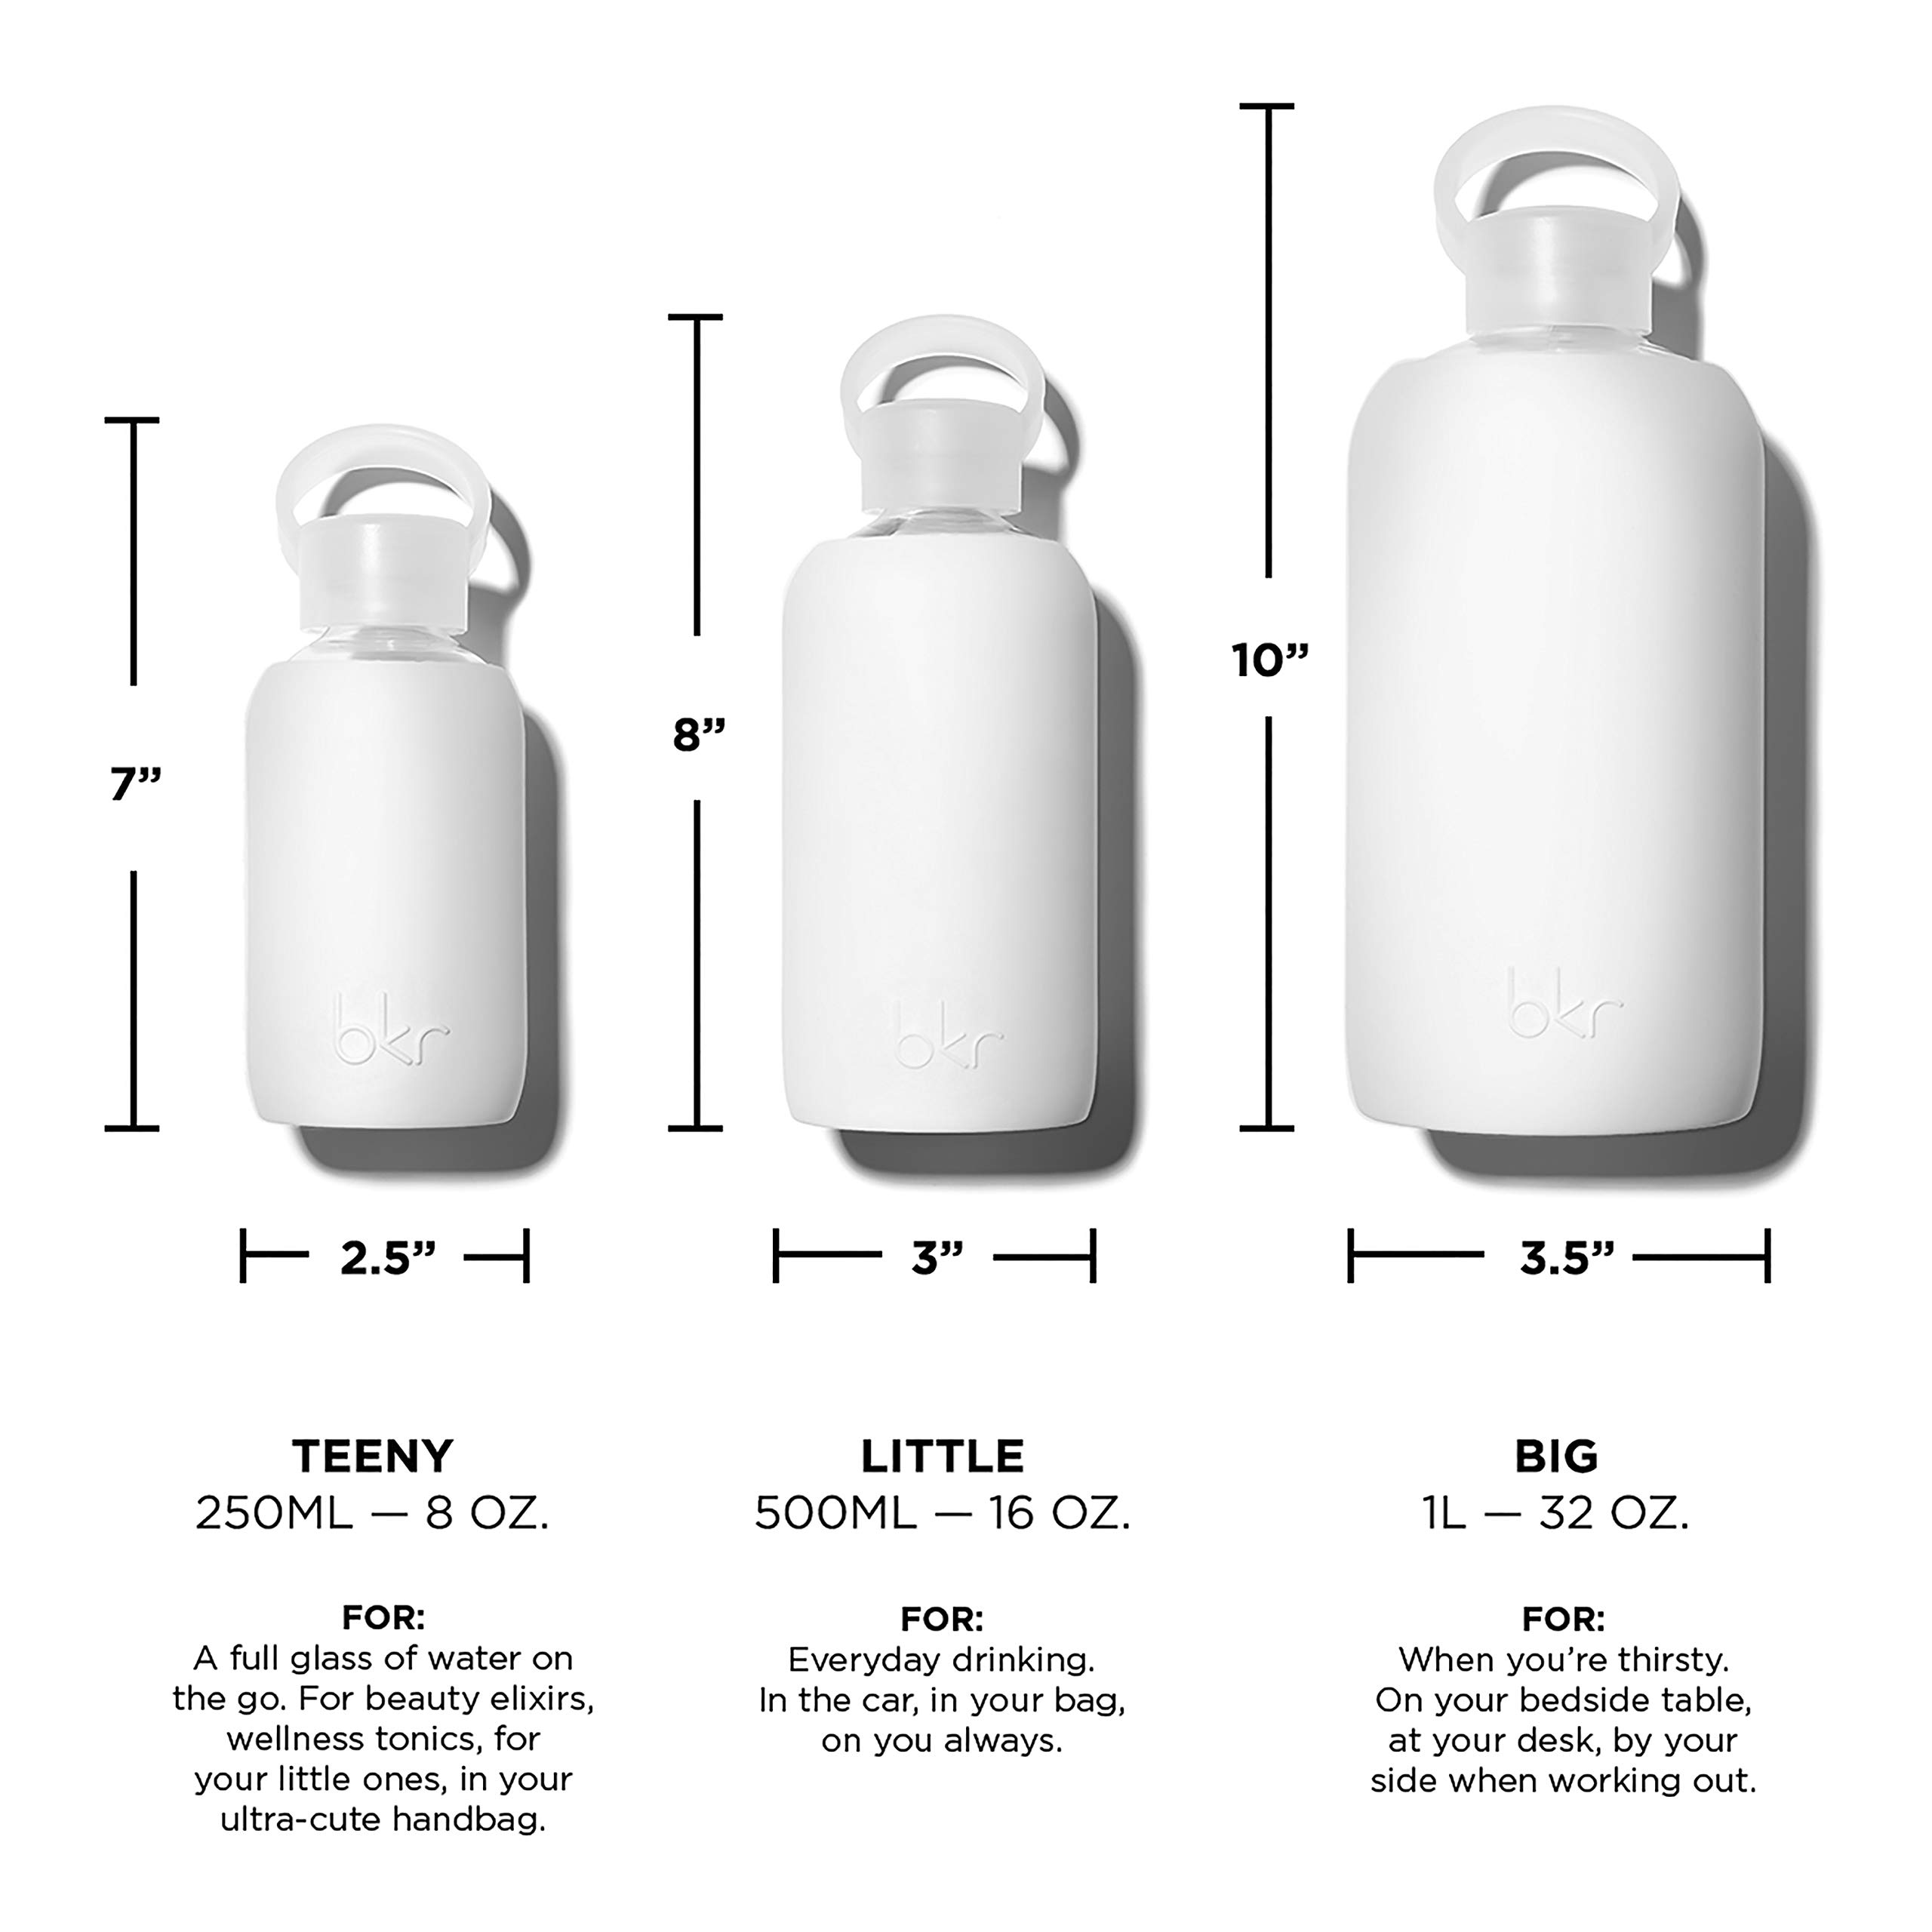 bkr Winter Glass Water Bottle with Smooth Silicone Sleeve for travel, Narrow Mouth, BPA-Free & Dishwasher Safe, Opaque White, 8 oz / 250 mL by bkr (Image #7)